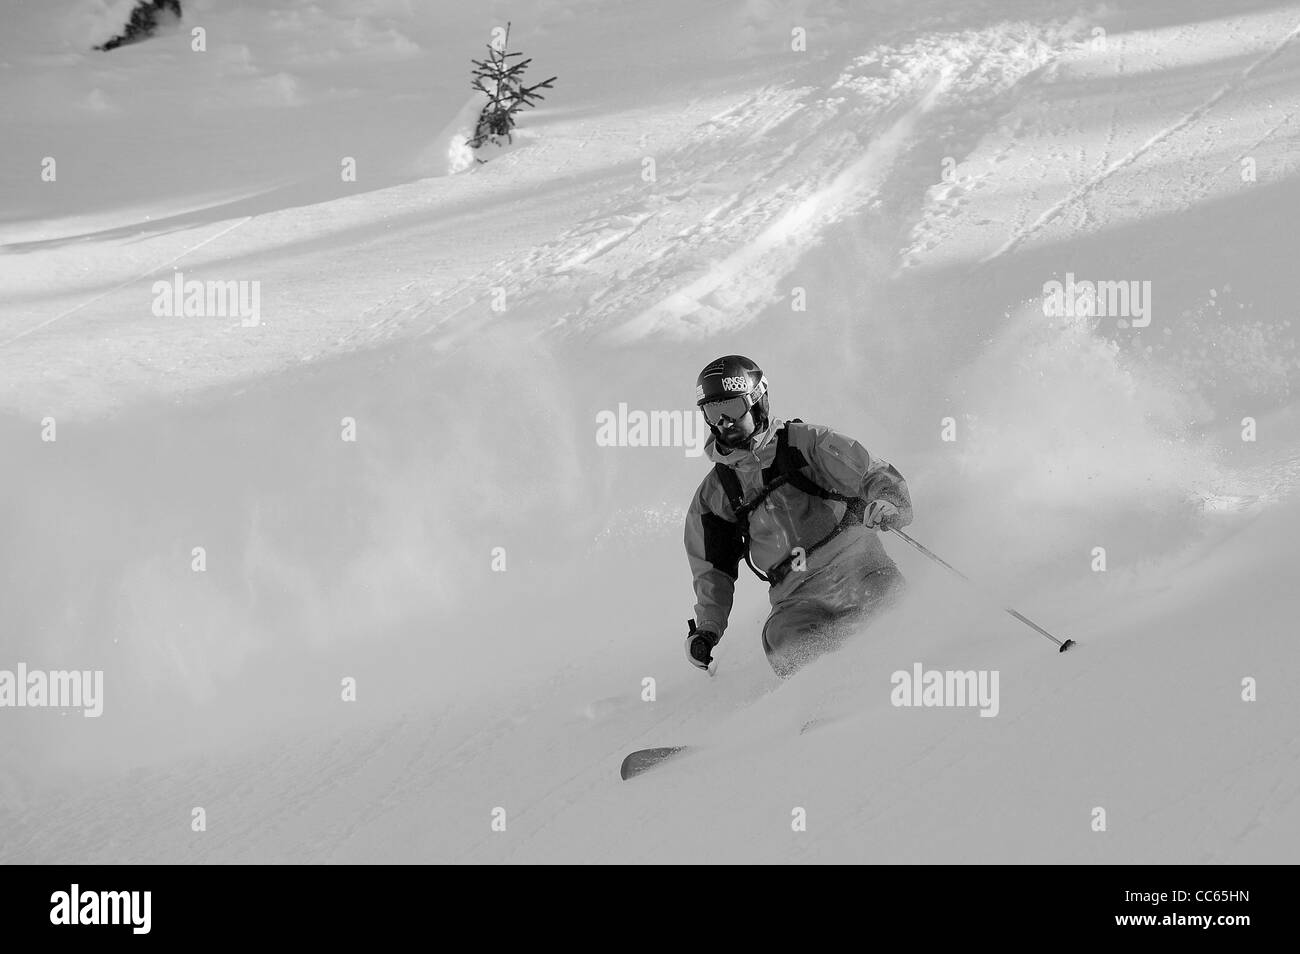 A skier turns in deep powder snow, off piste in the ski resort of Courchevel in France on Christmas Day. - Stock Image